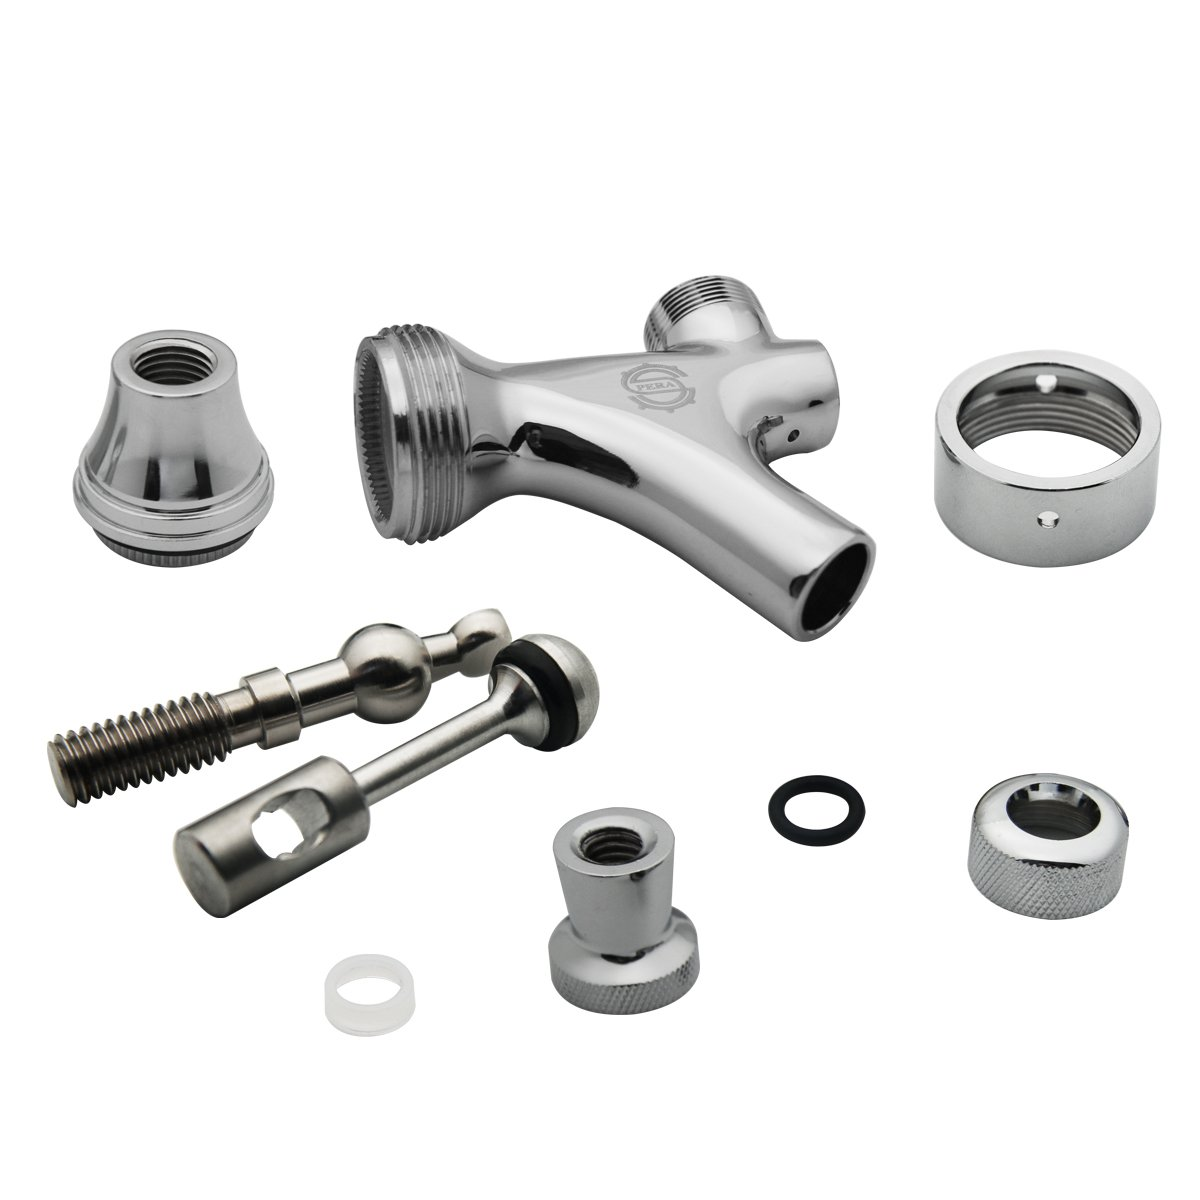 Stainless Steel Stem Beer keg Tap Faucet with Ball Lock disconnect chromed body PERA